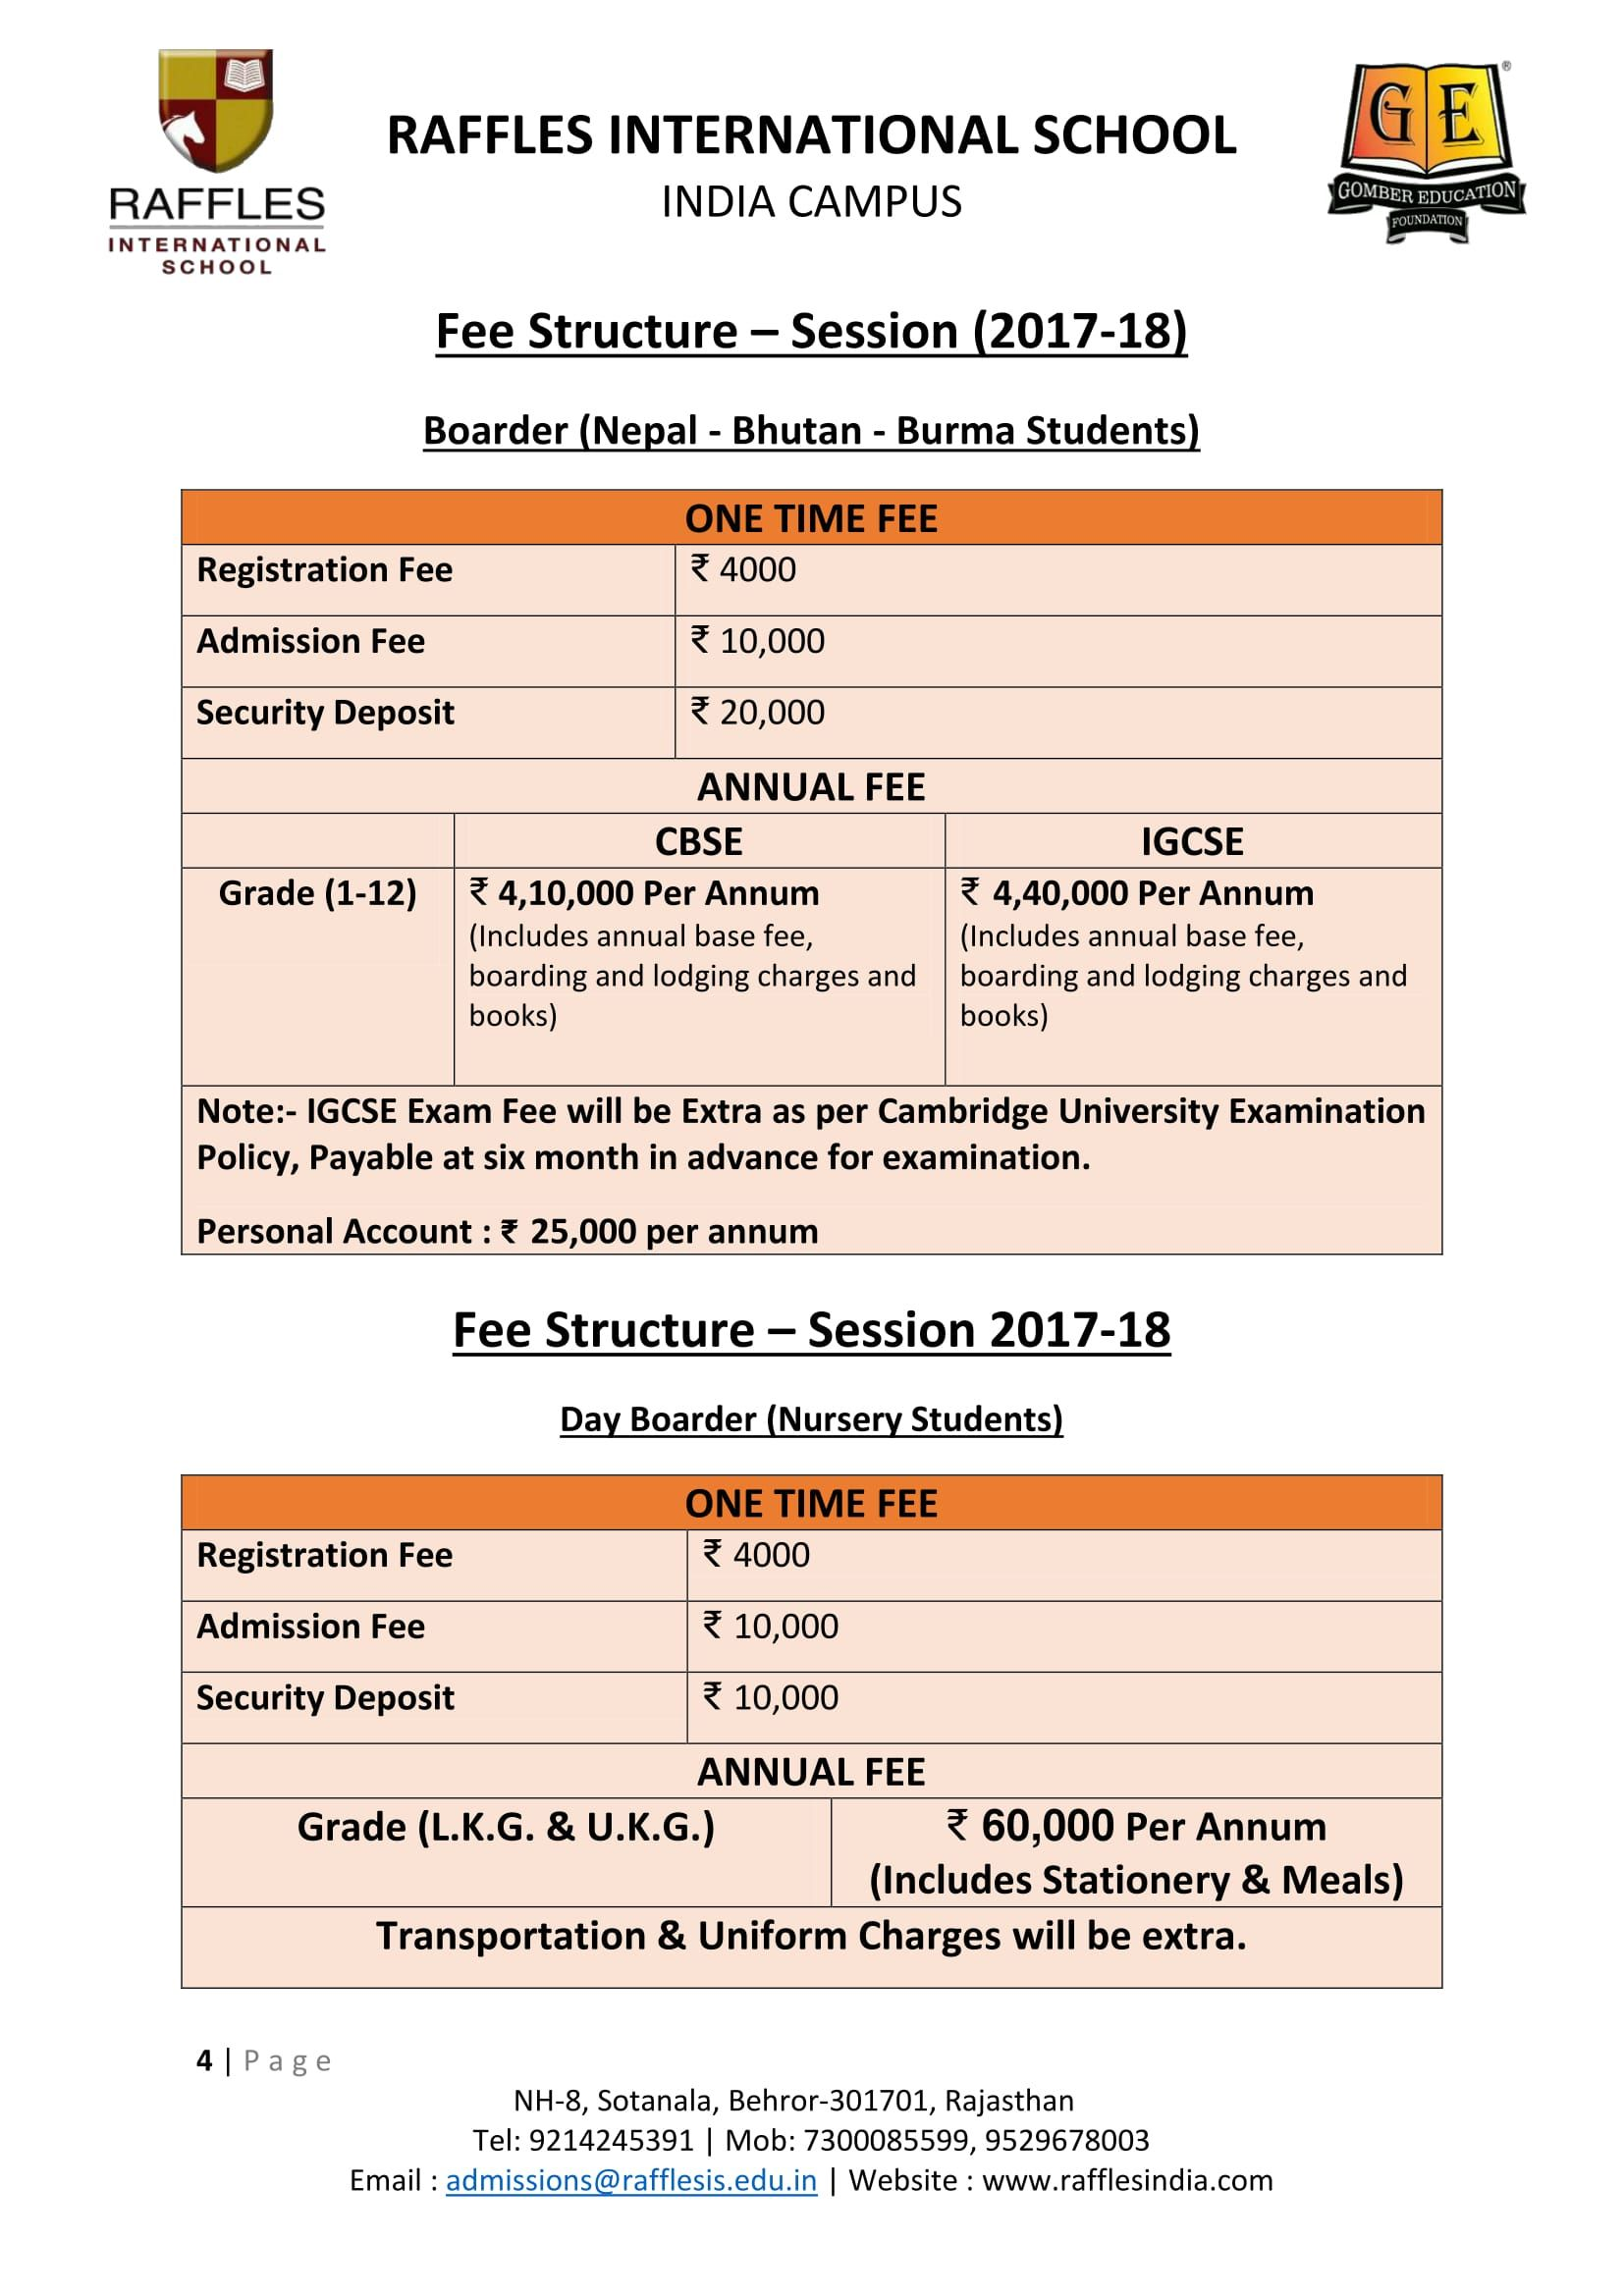 Fee structure for boarding students of nepal bhutan and burma from fee structure for boarding students of nepal bhutan and burma from class 3rd to 12th for session 2017 18 fandeluxe Gallery